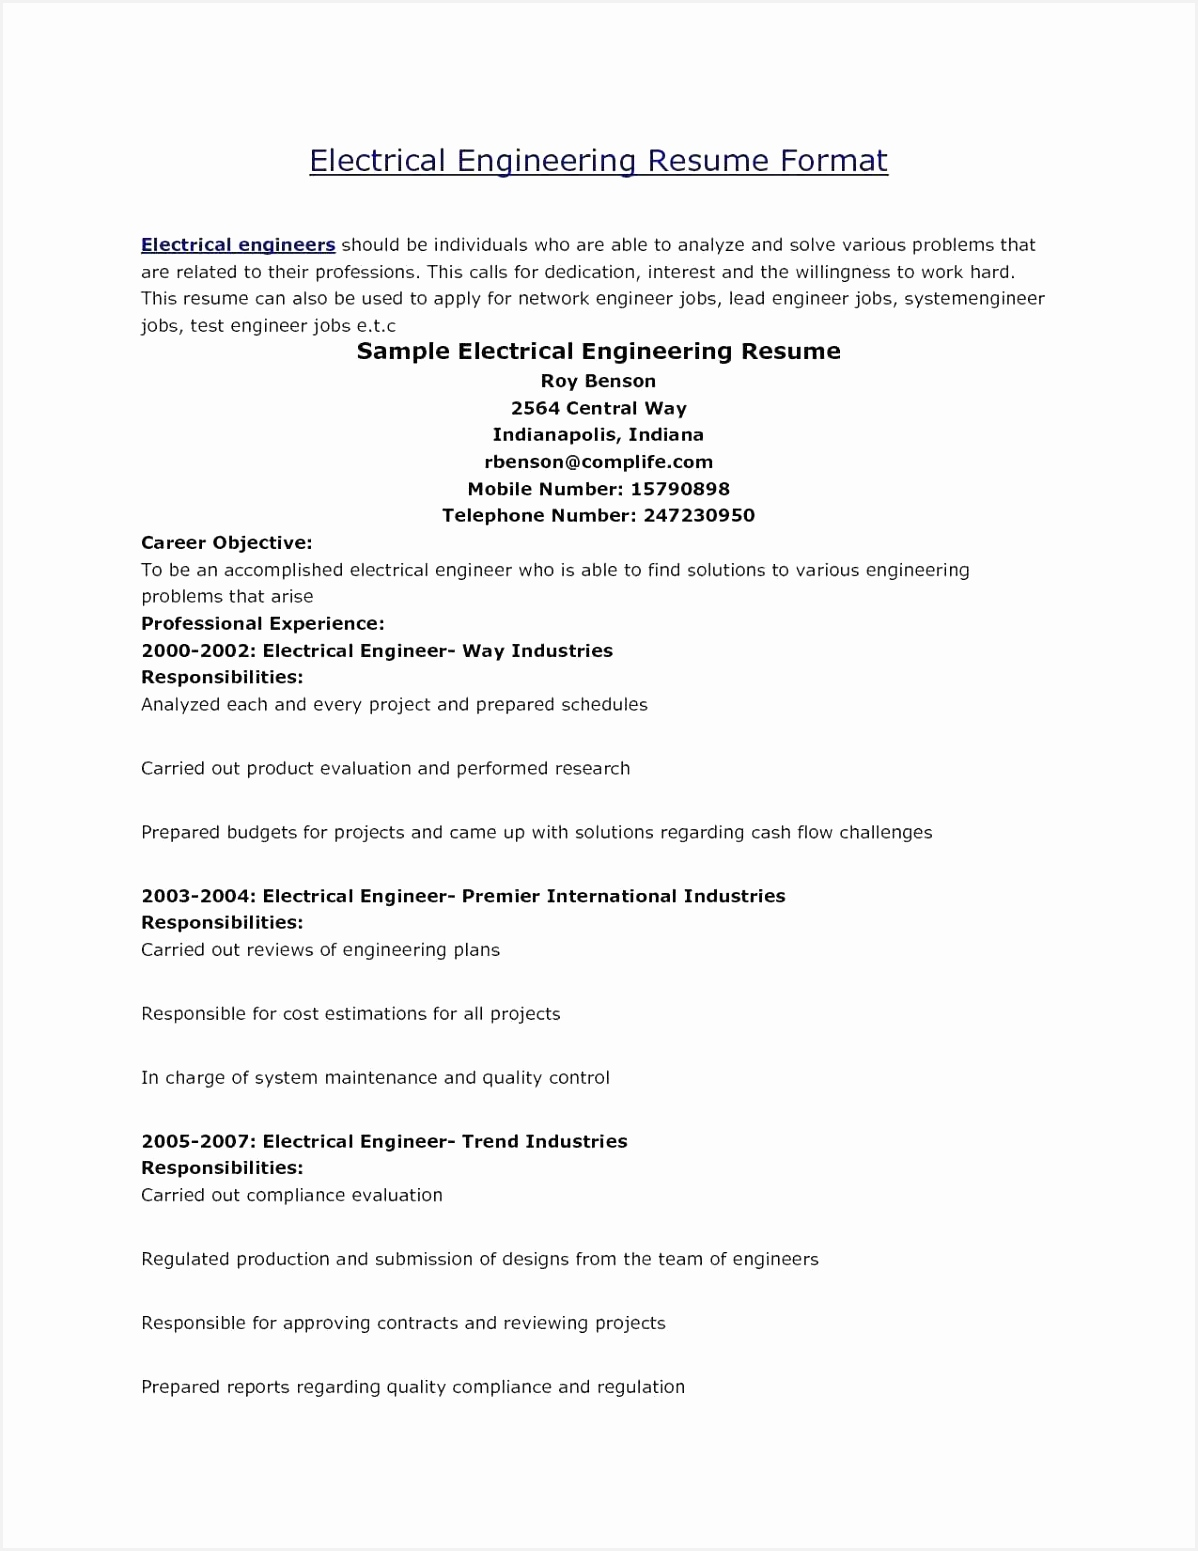 Contract Stress Engineer Sample Resume Nljaa Beautiful Resume format for Design Engineer In Mechanical Fresh Sample Resume Of Contract Stress Engineer Sample Resume atgkl Awesome 24 Fresh Mechanical Engineering Resume Templates